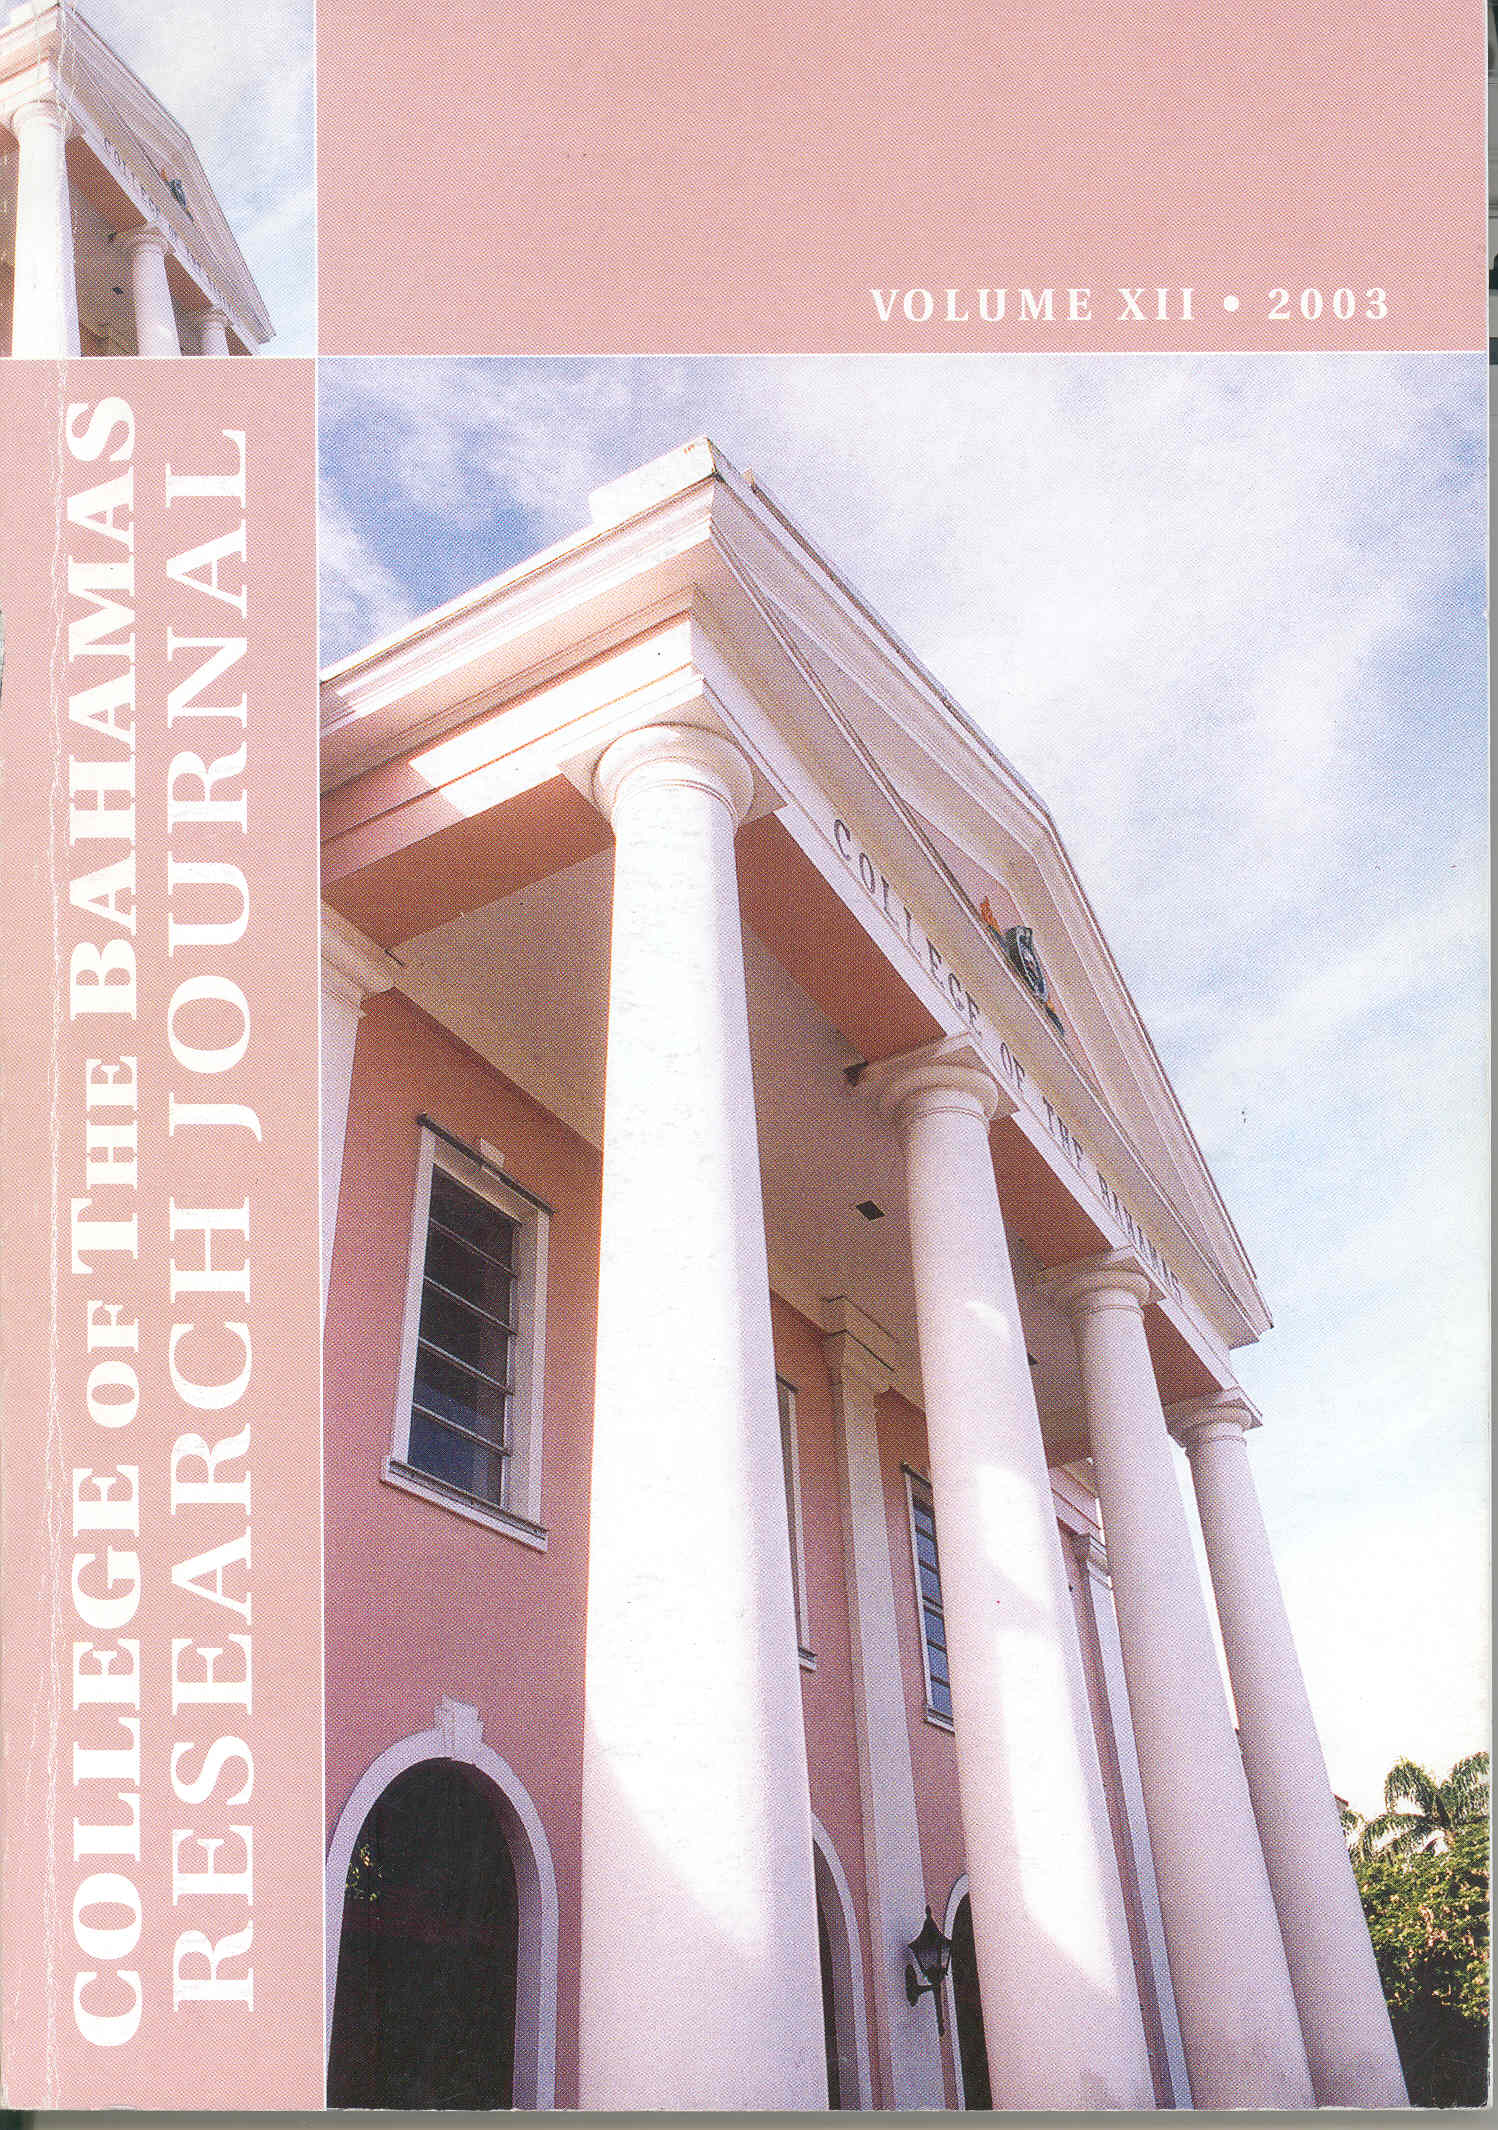 The College of The Bahamas Research Journal